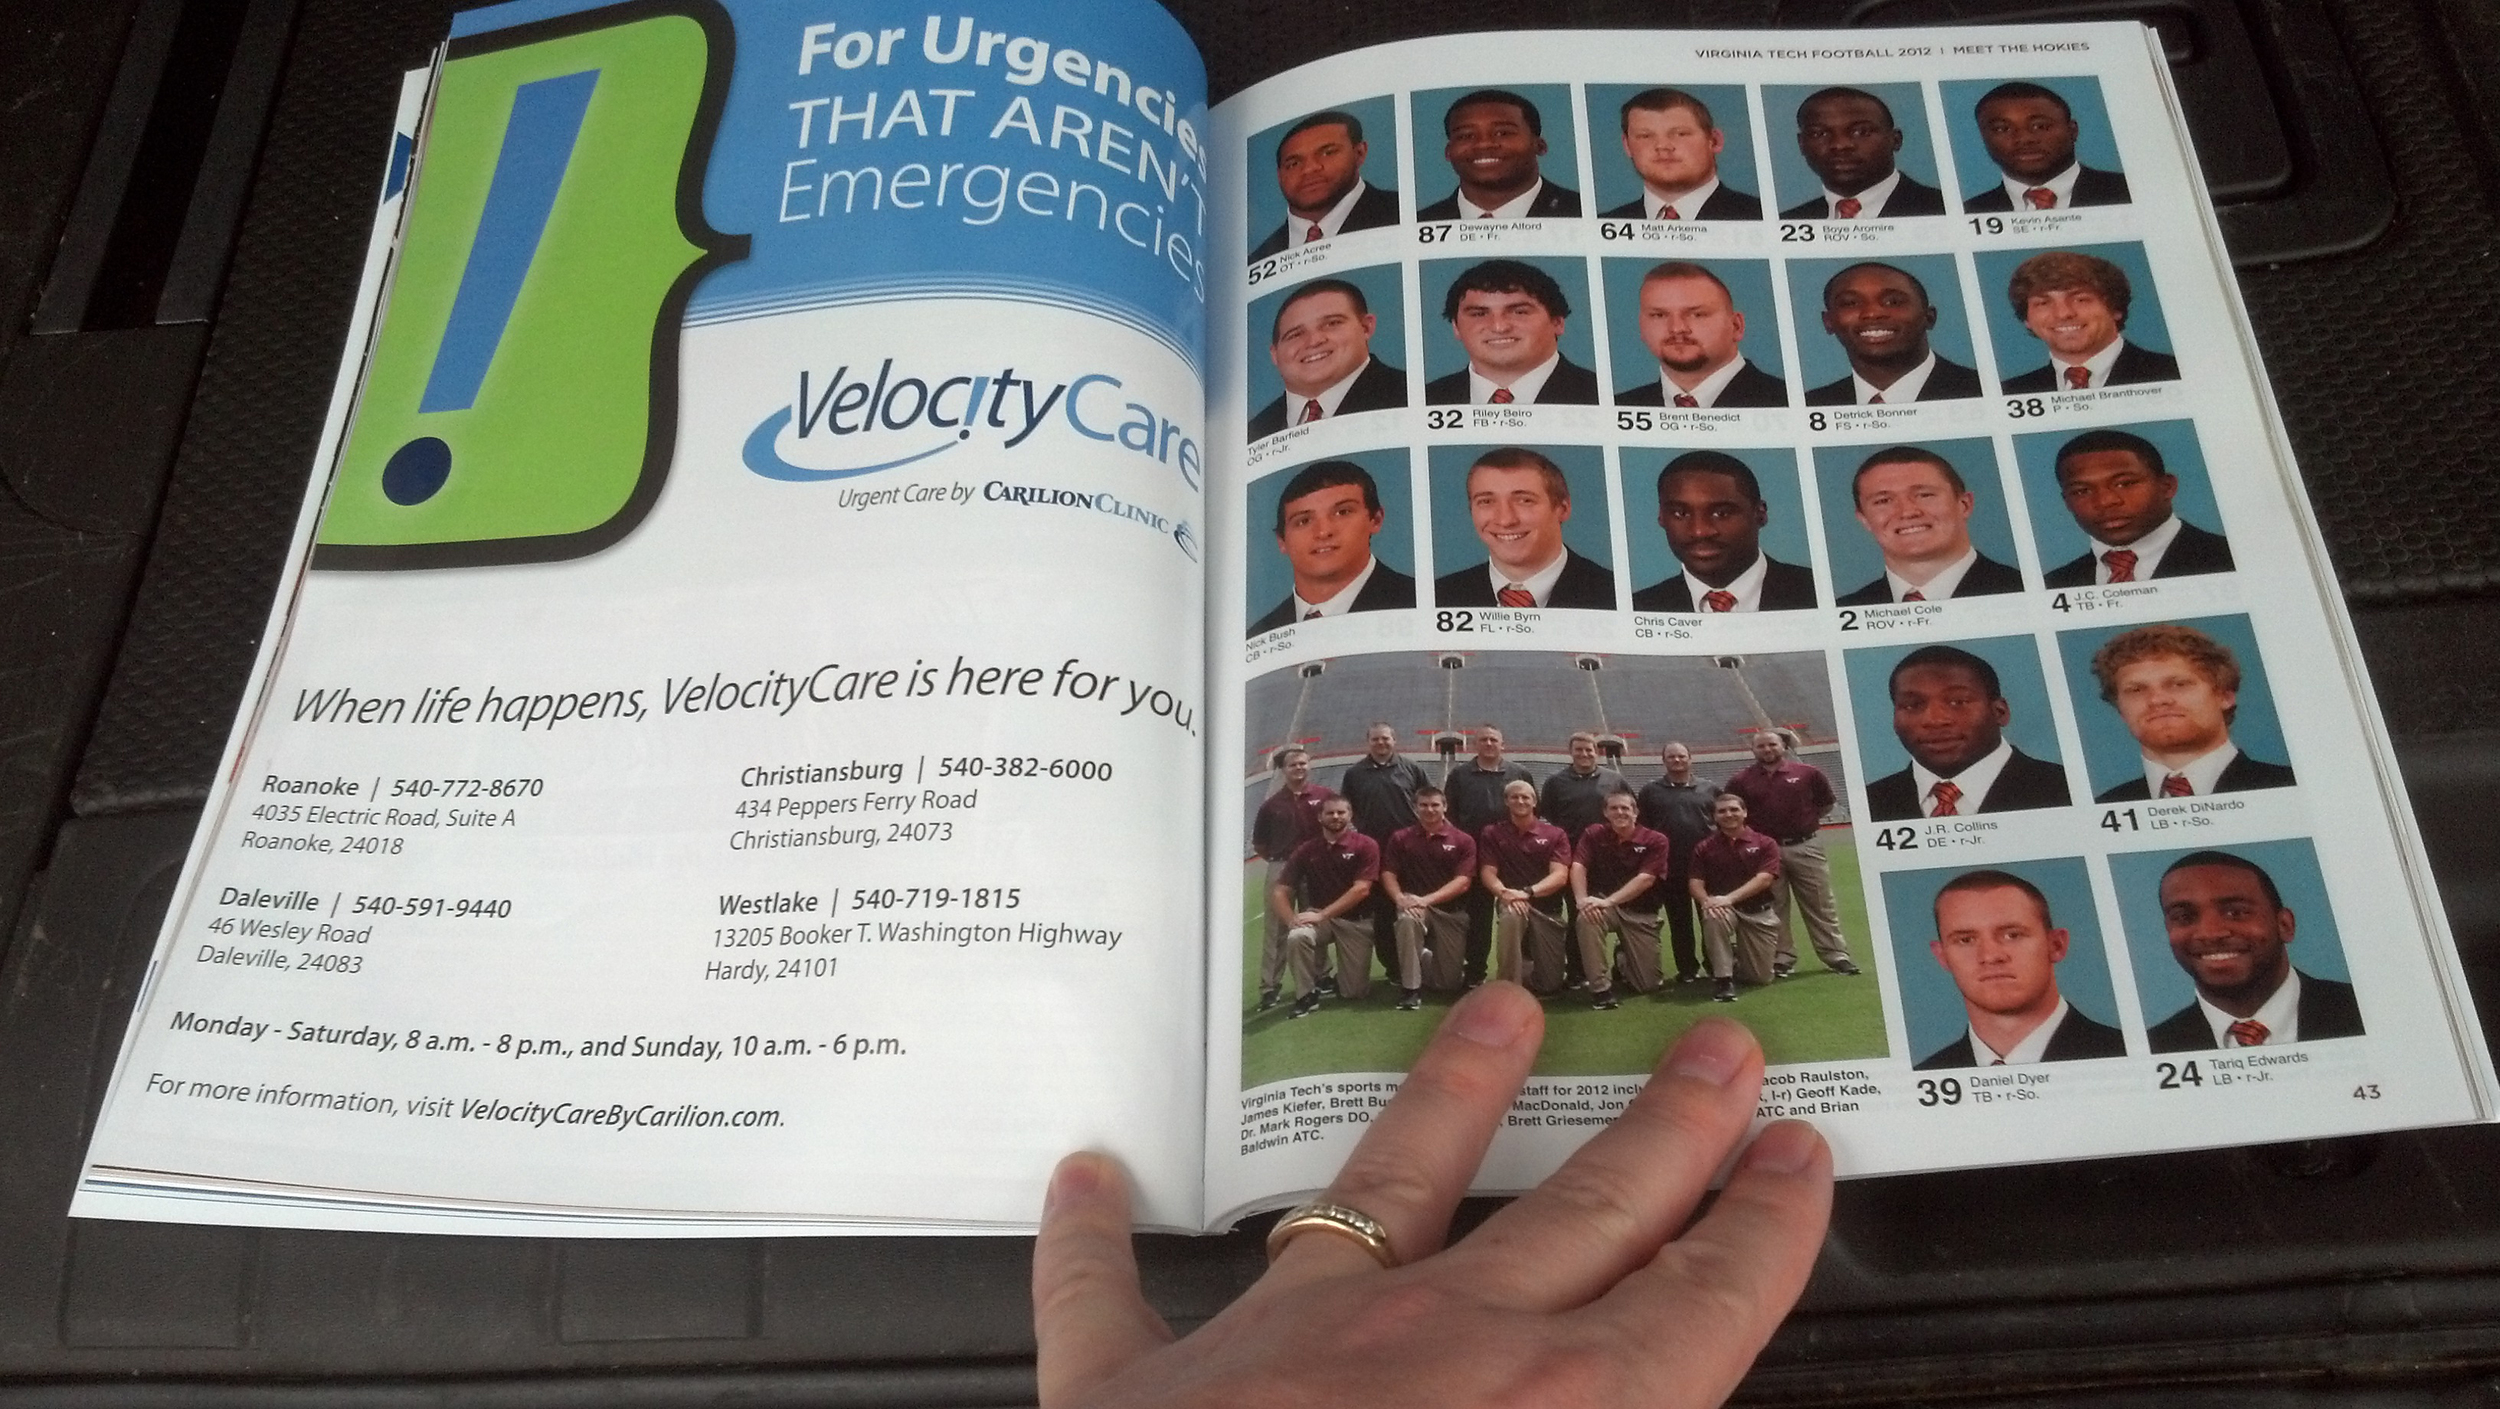 VelocityCare in Hokies Program.jpg